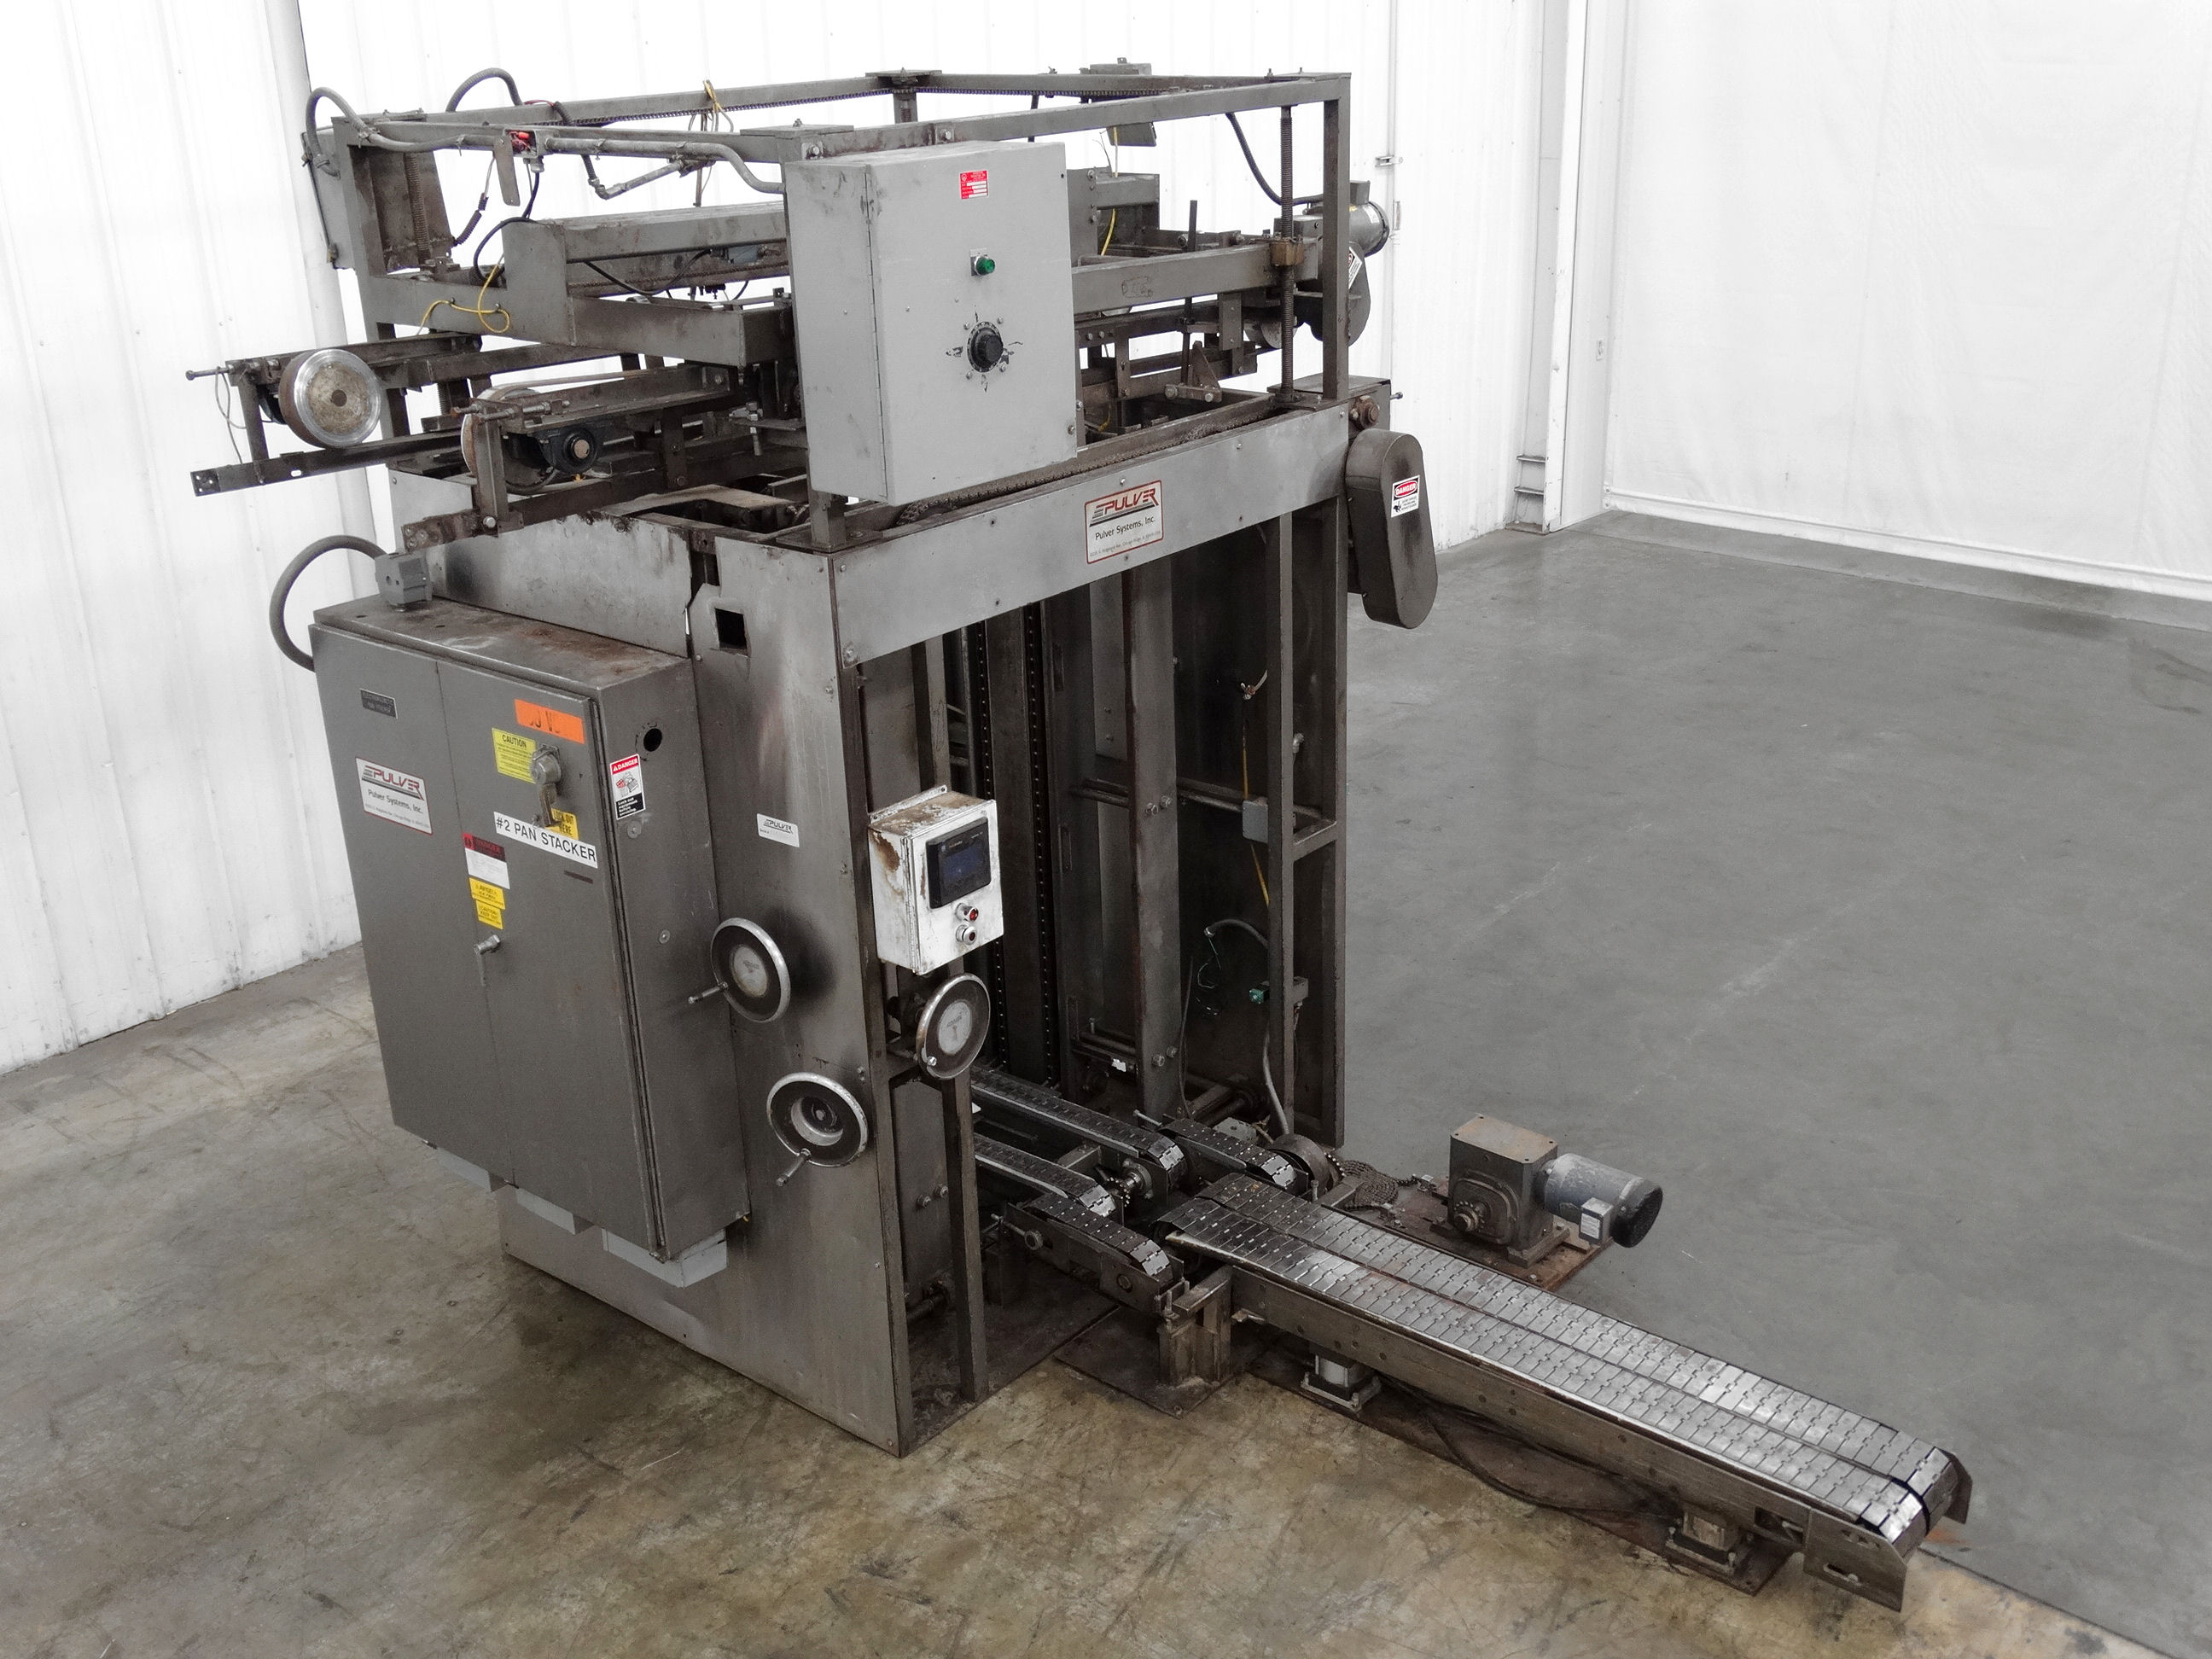 Pulver Stainless Steel Pan Stacker B4409 - Image 6 of 11